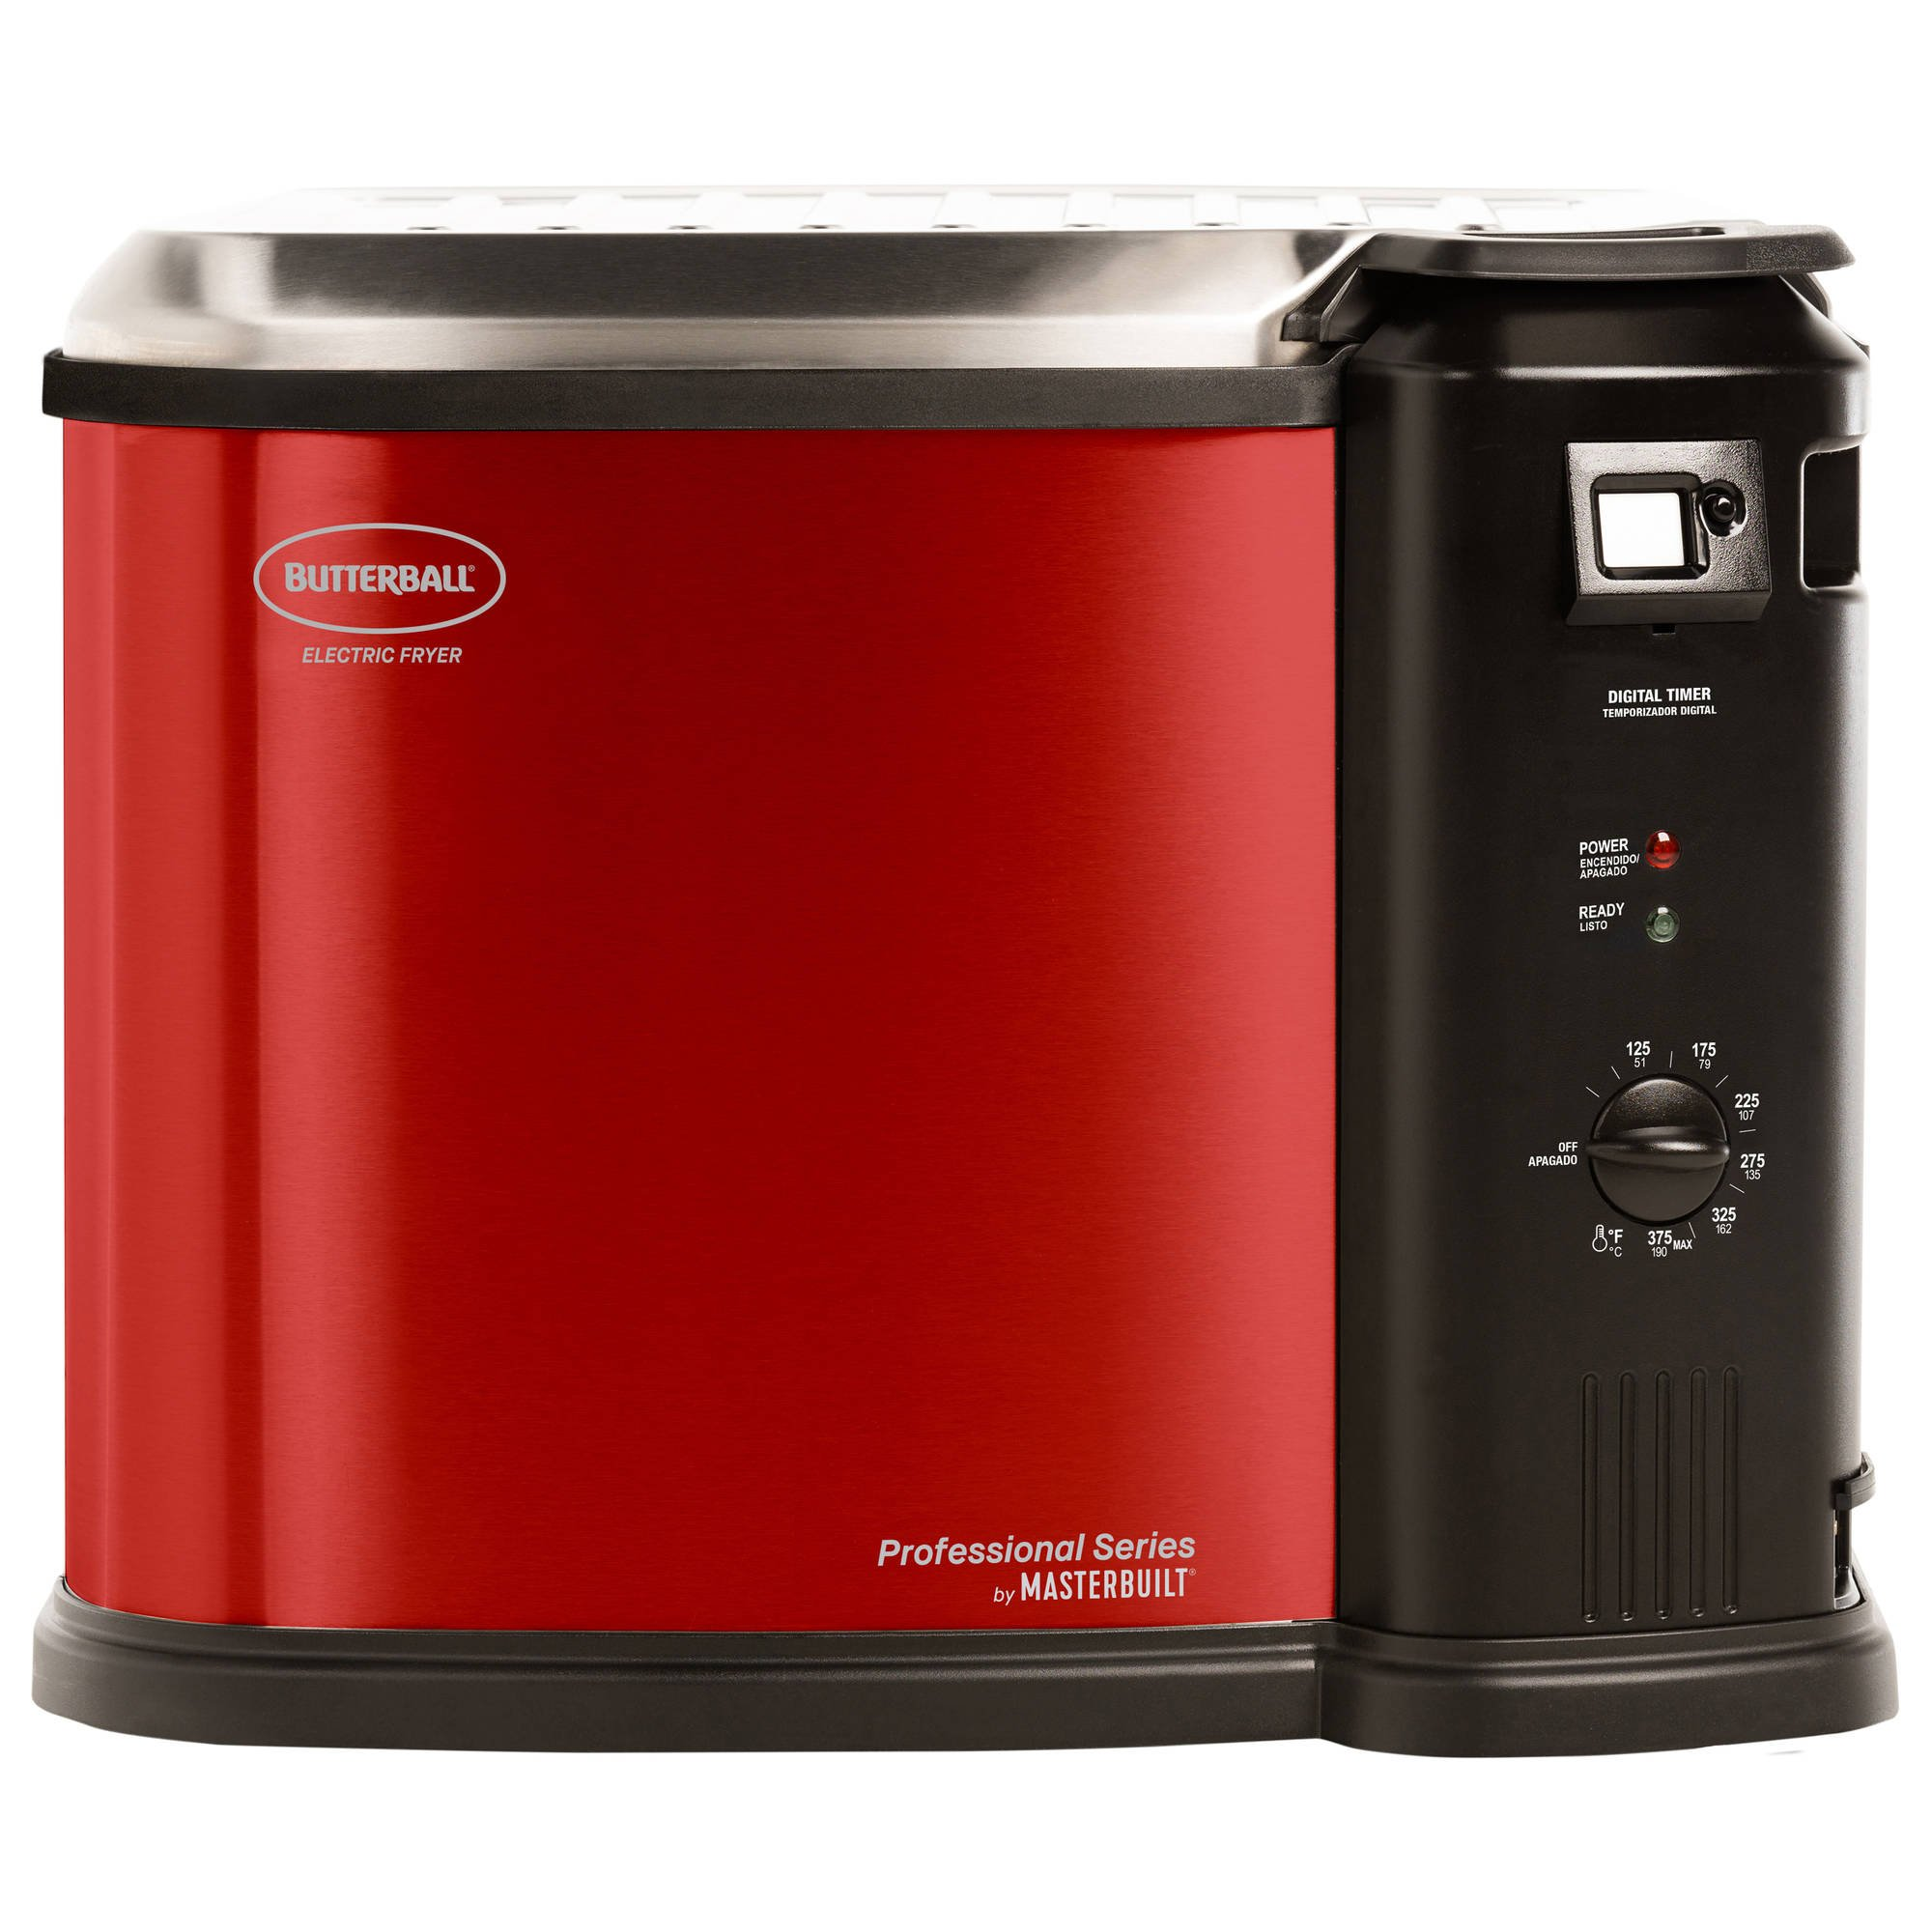 Butterball XL Electric Fryer by Masterbuilt (Red)